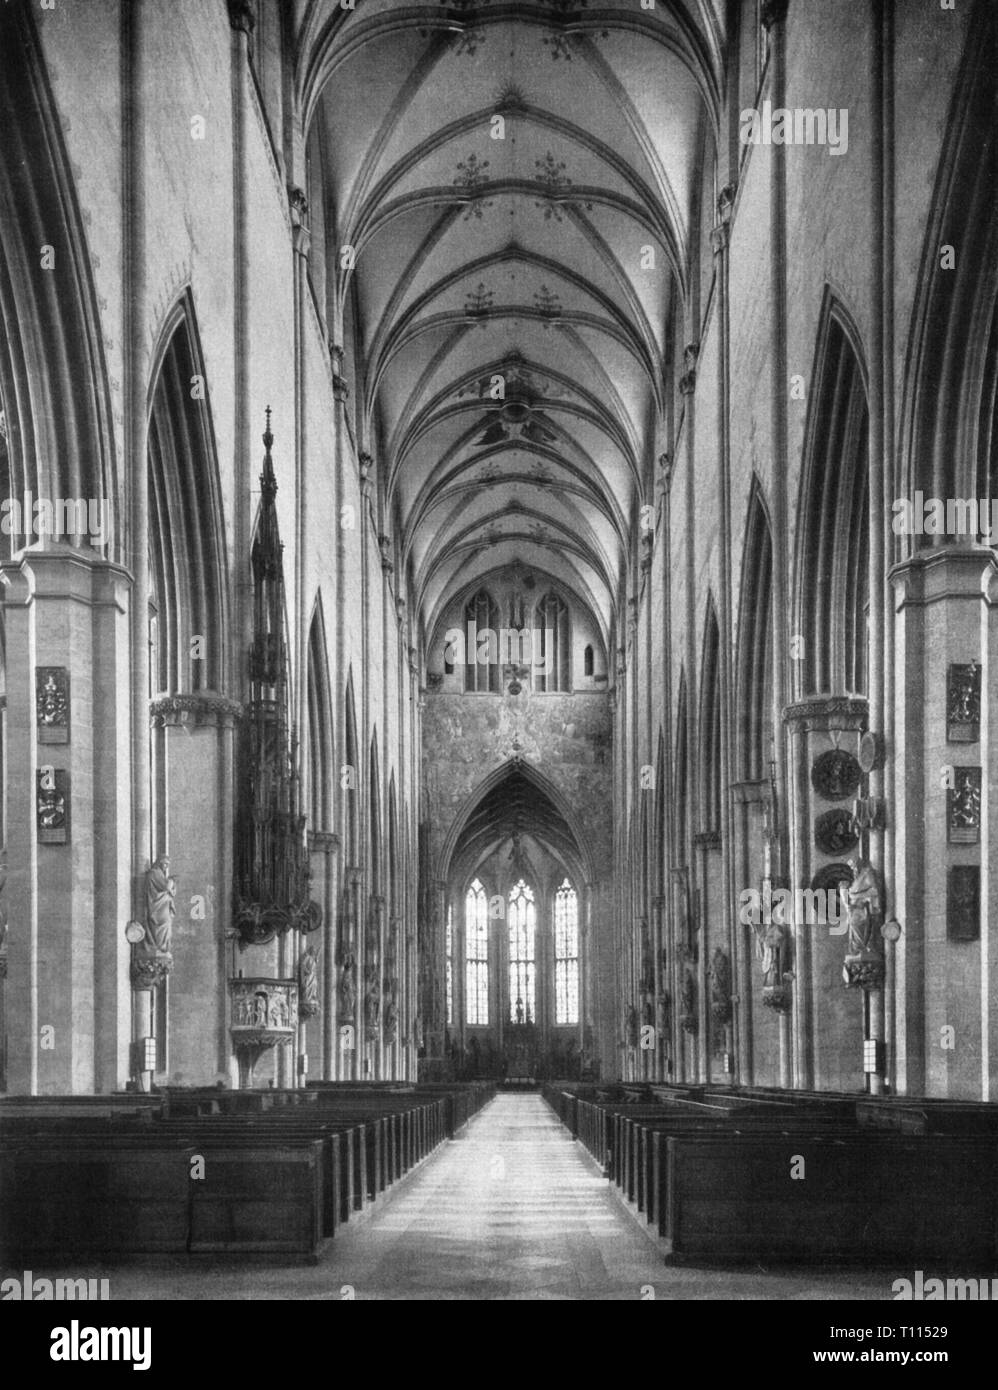 geography / travel, Germany, Baden-Wuerttemberg,Ulm, churches, Ulm minster, built 1377 - 1890, interior view, longhouse with chancel, 1937, religion, religions, Christianity, Middle Ages, medieval, mediaeval, Gothic style, Gothic period, gotisch, cross vault, cross vaults, vault, vaults, Southern Germany, the South of Germany, Germany, Central Europe, Europe, beadhouse, bedehouse, sacred building, sacred buildings, architecture, 20th century, 1930s, Baden-Wuerttemberg, Baden Wuerttemberg, Wuertemberg, Baden-Wurtemberg, Wurtemberg, Wurttemberg, Ba, Additional-Rights-Clearance-Info-Not-Available Stock Photo